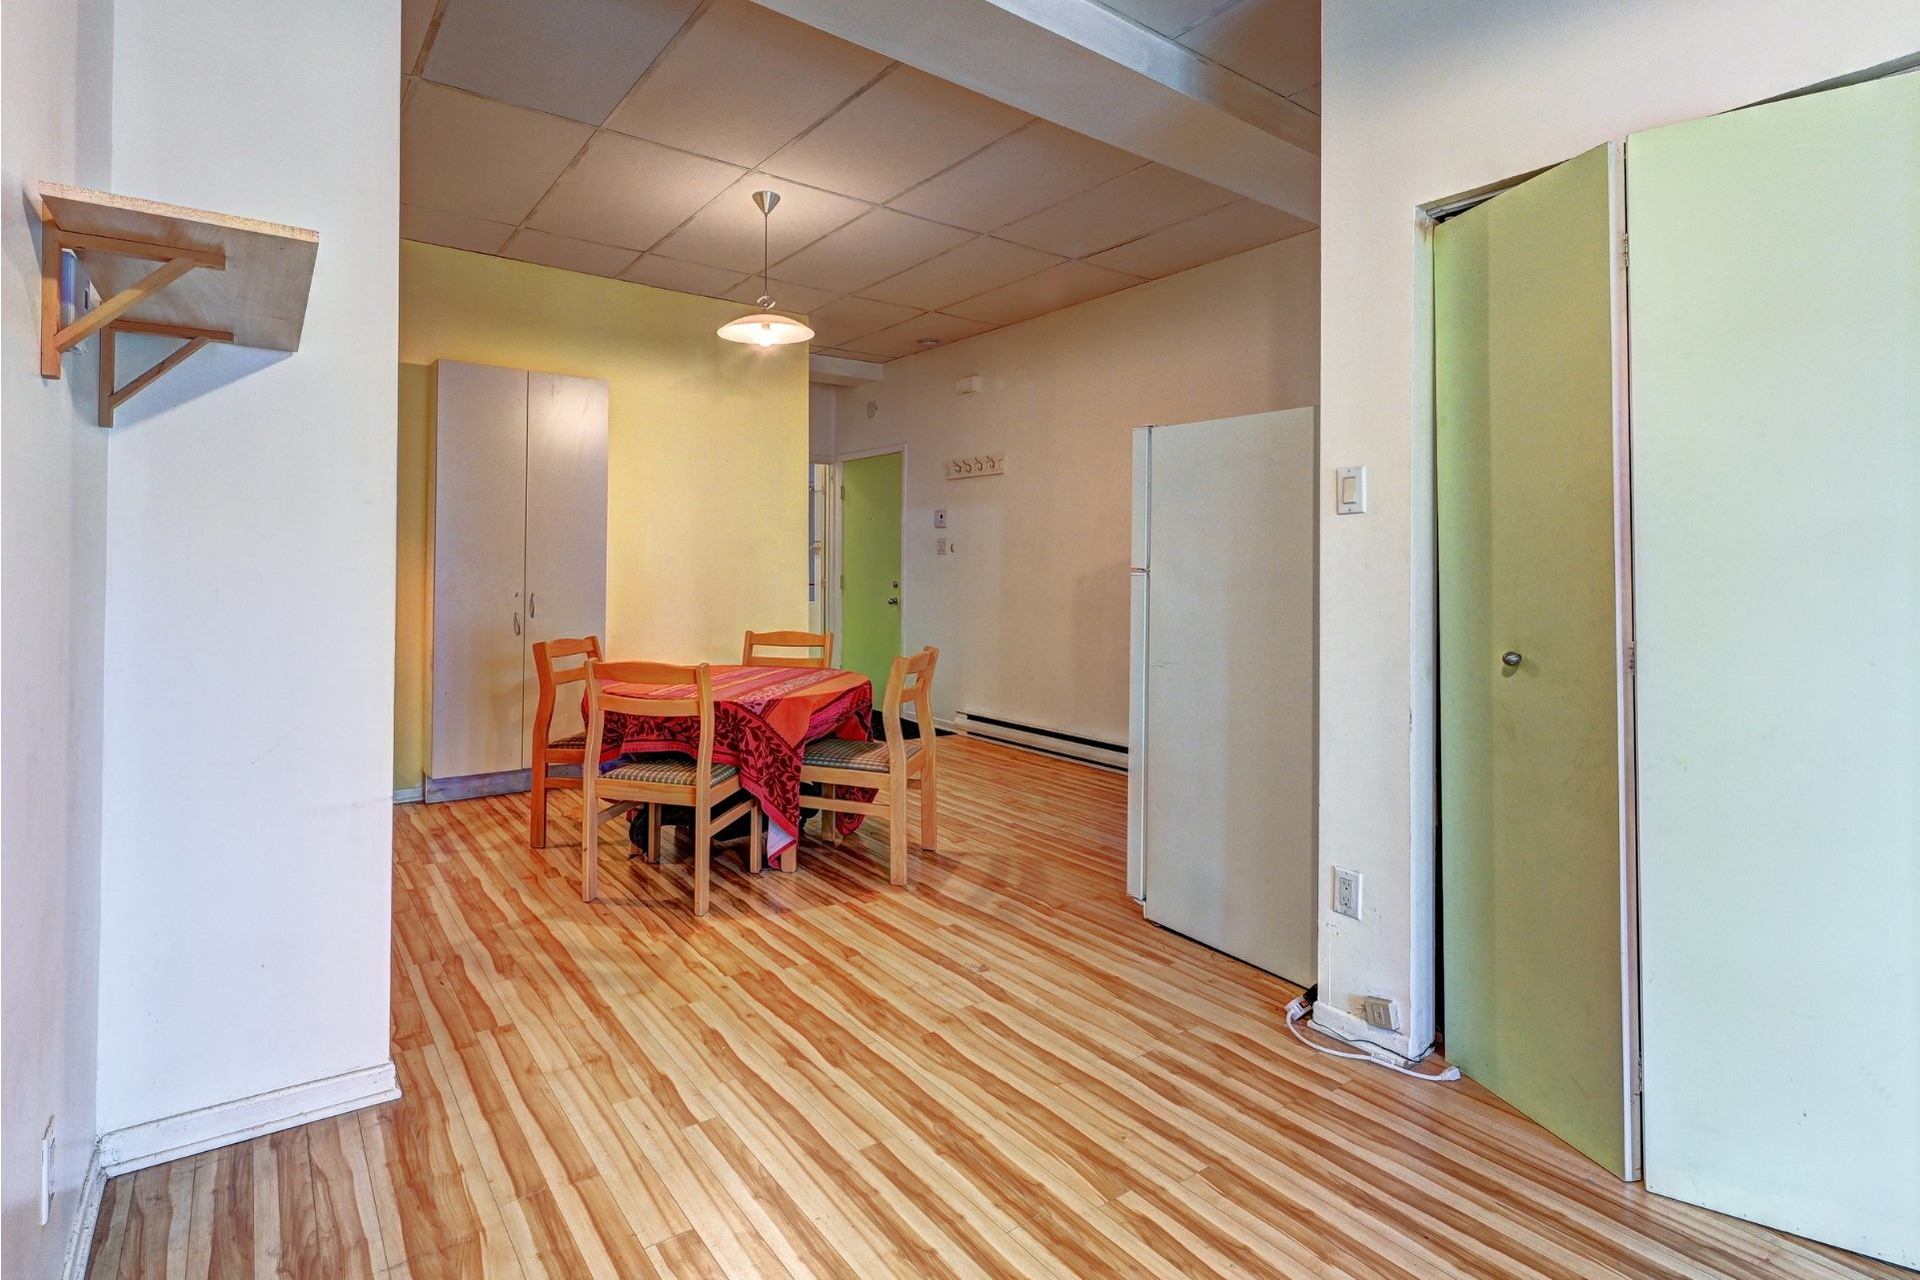 image 17 - Quadruplex For sale Ville-Marie Montréal  - 4 rooms